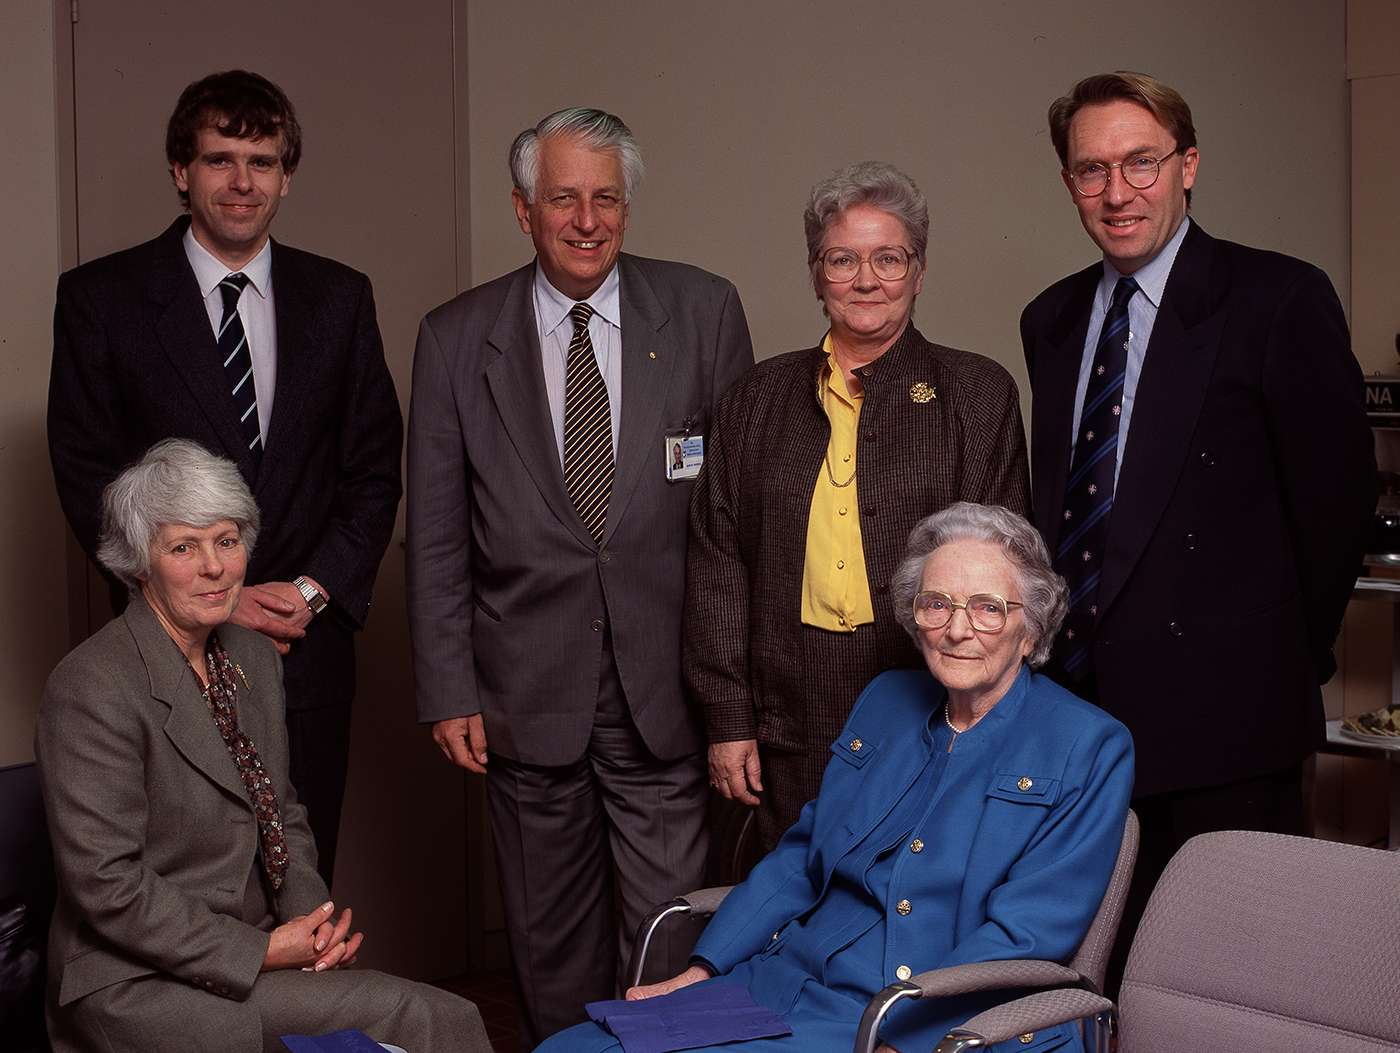 Group of people, two sitting, four standing, smiling facing camera.